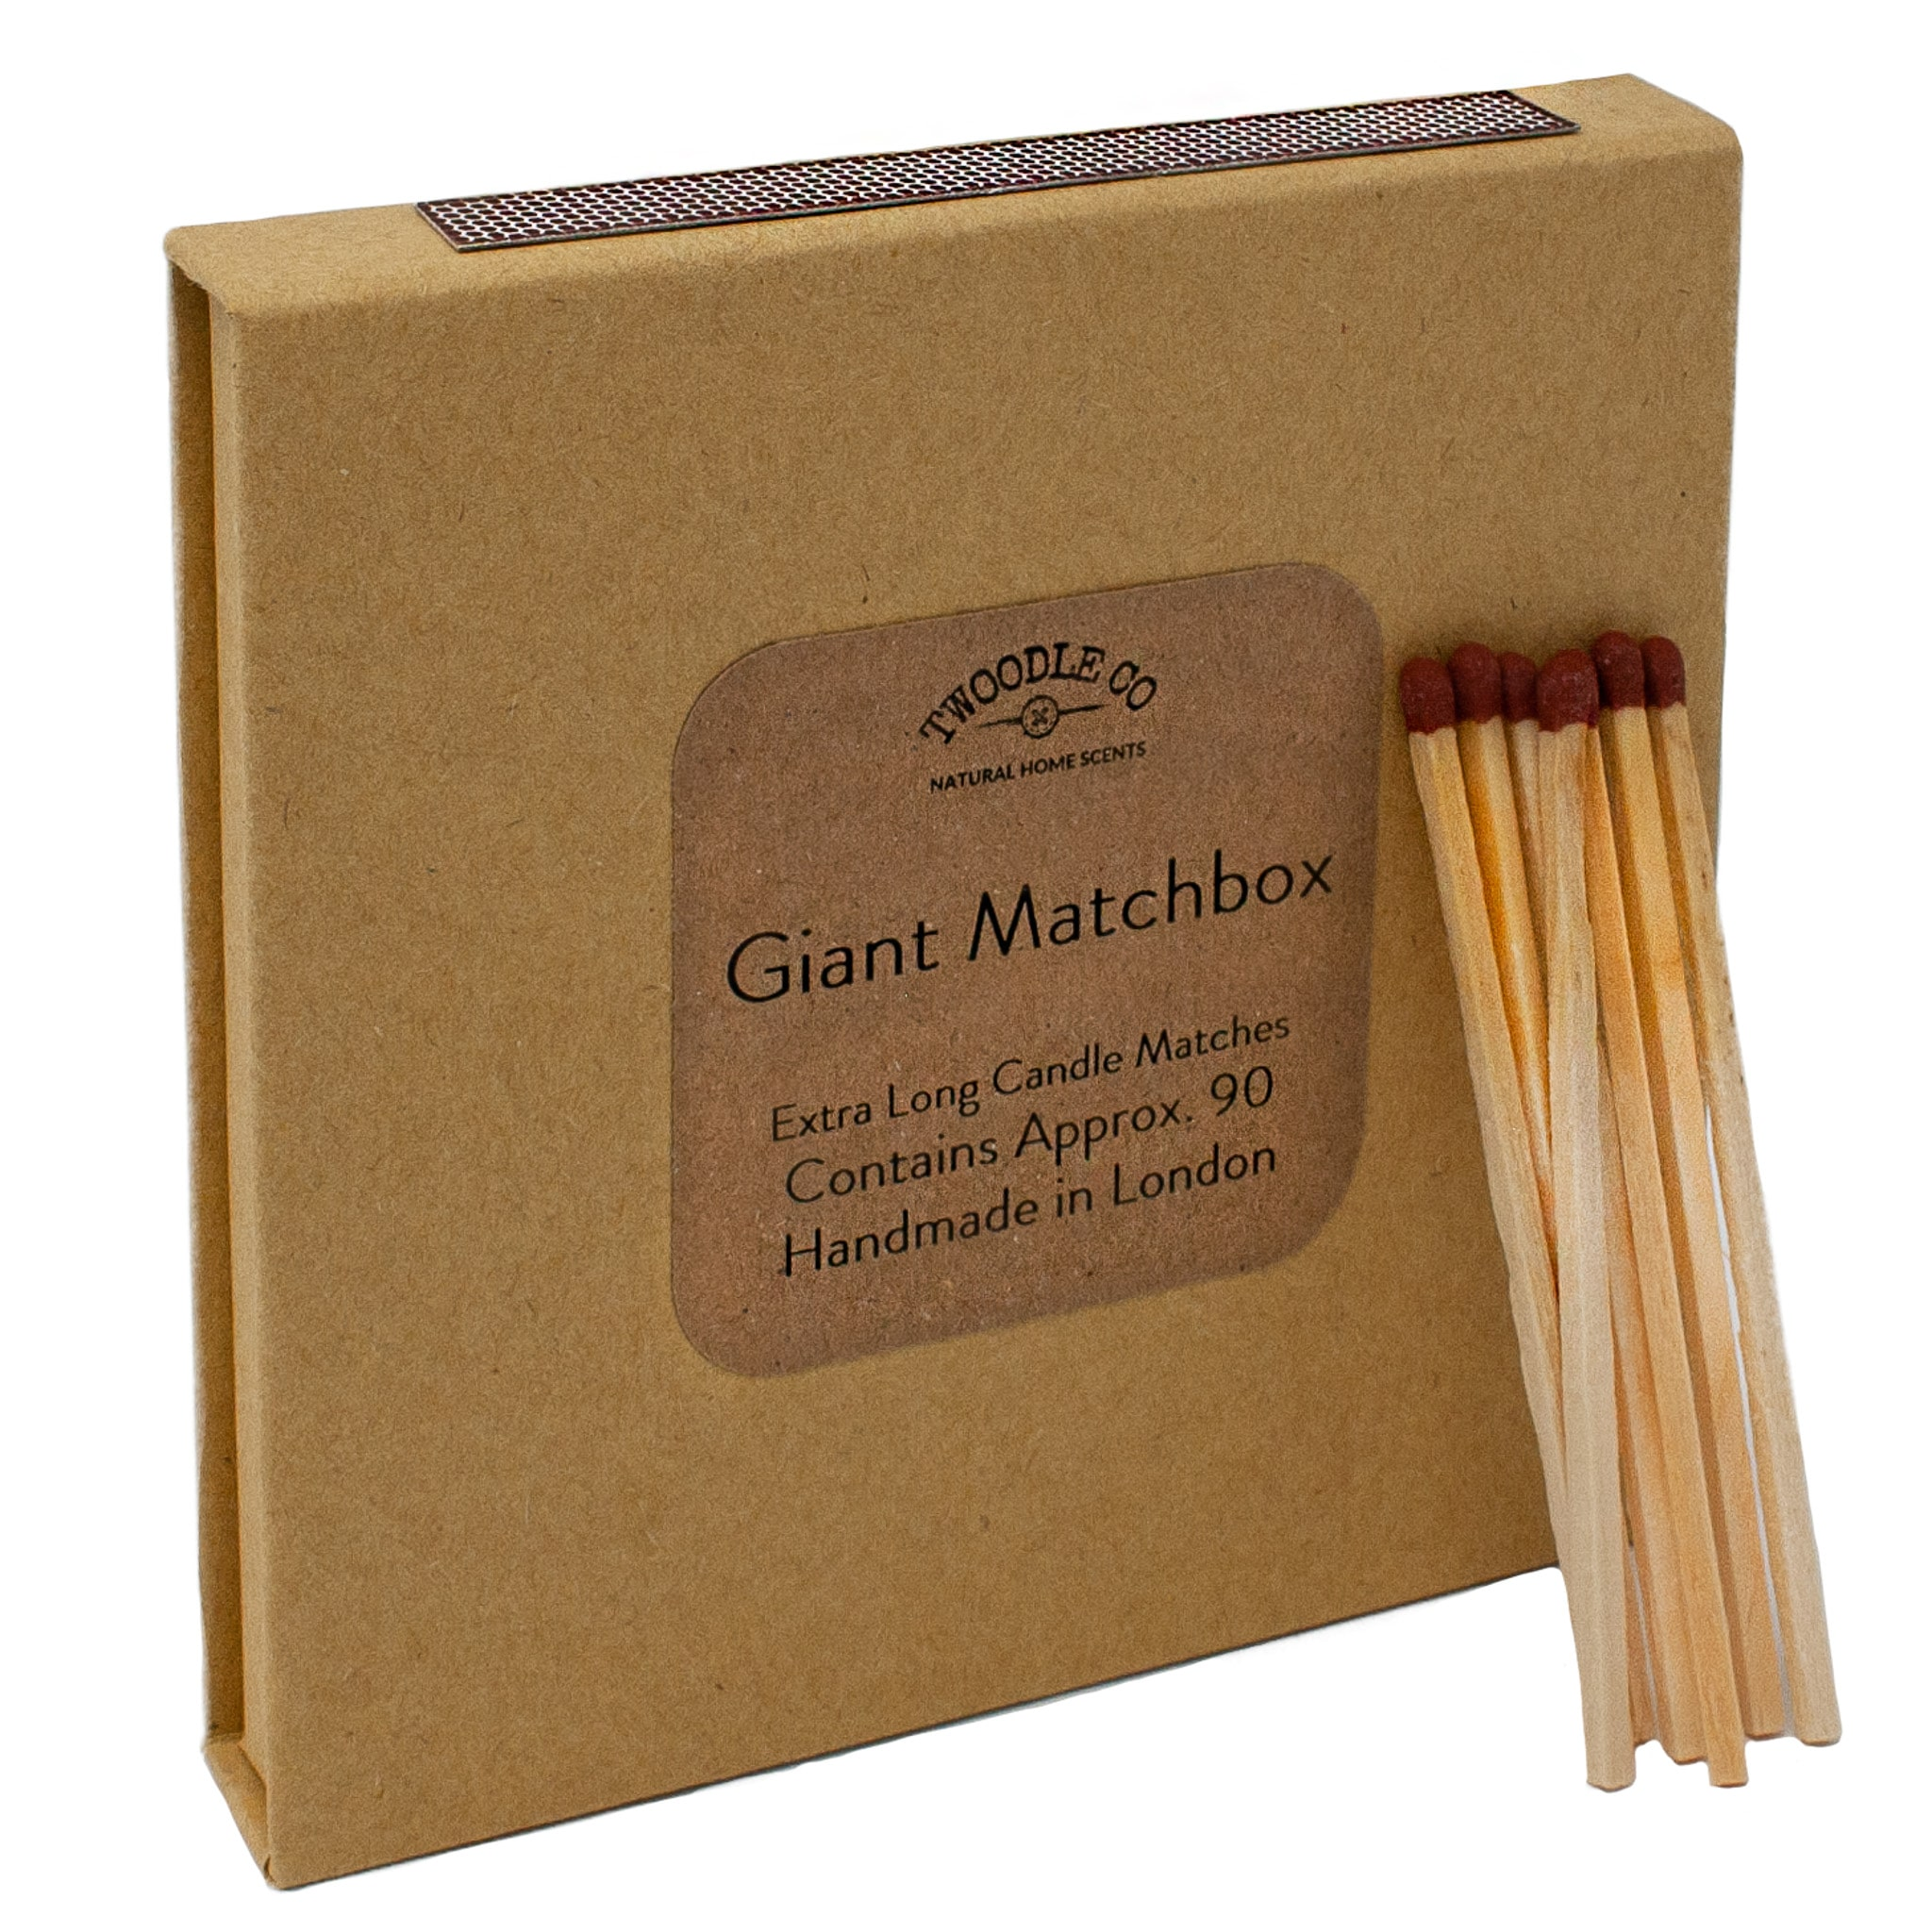 Giant match box extra long candle matches by Twoodle Co Natural Home Scents 2